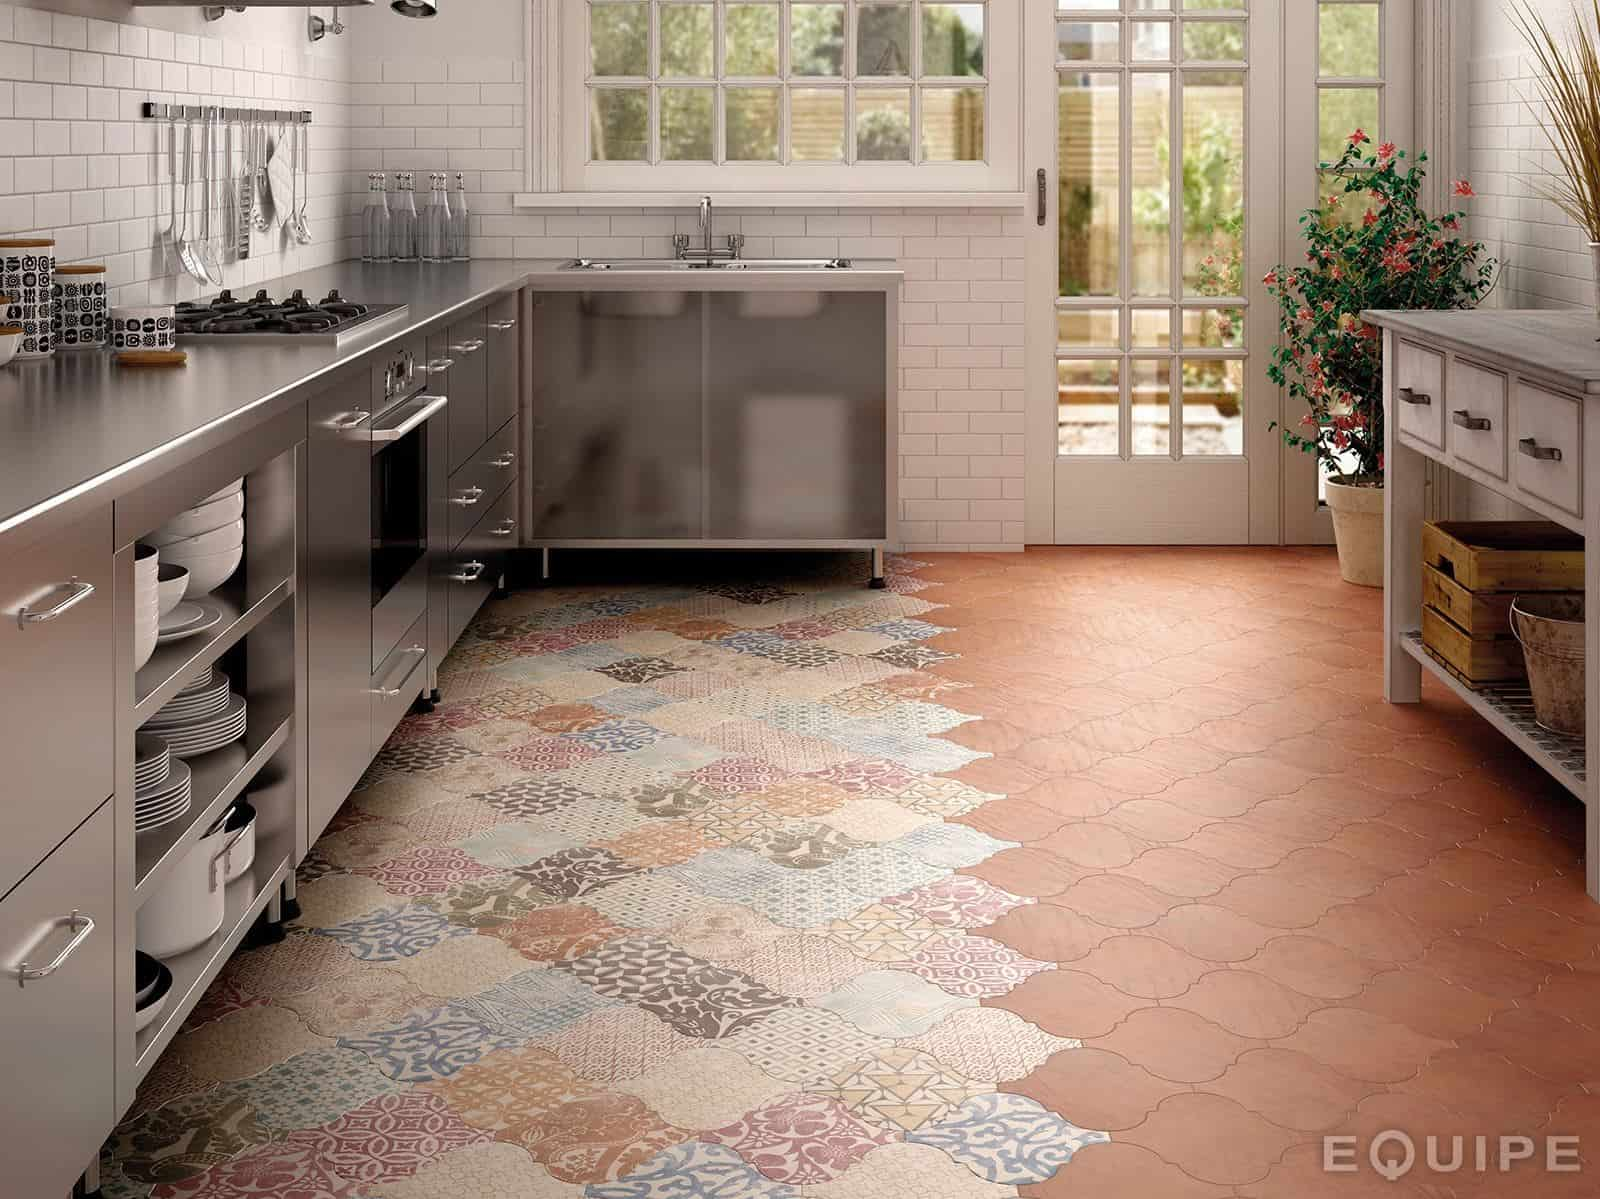 Kitchen Tile Pictures 21 Arabesque Tile Ideas For Floor Wall And Backsplash